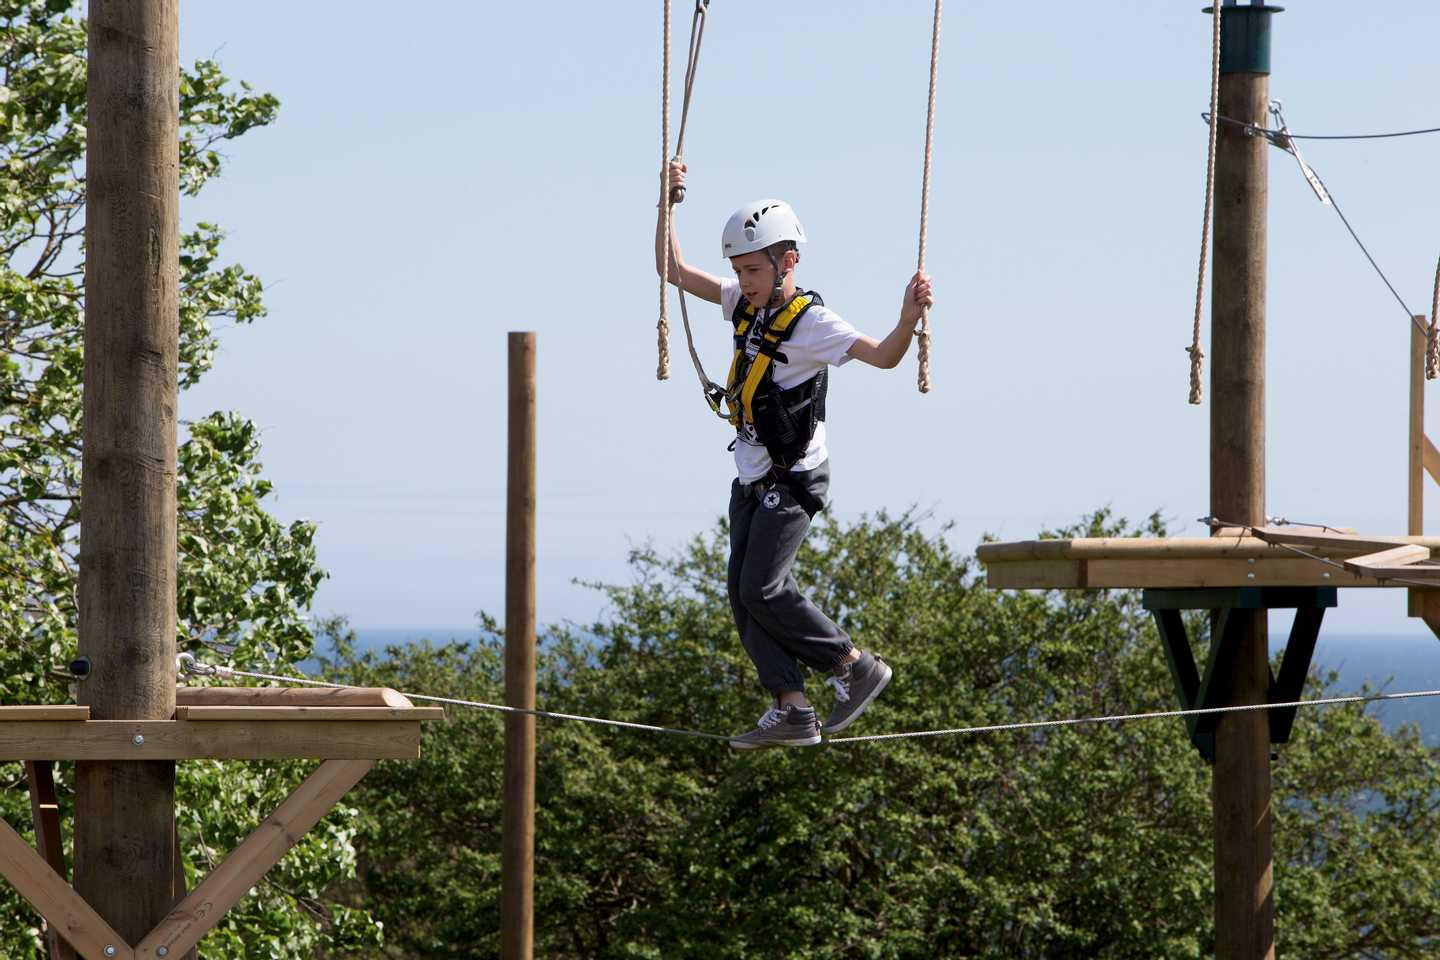 A guest on the Aerial Adventure ropes course at Devon Cliffs